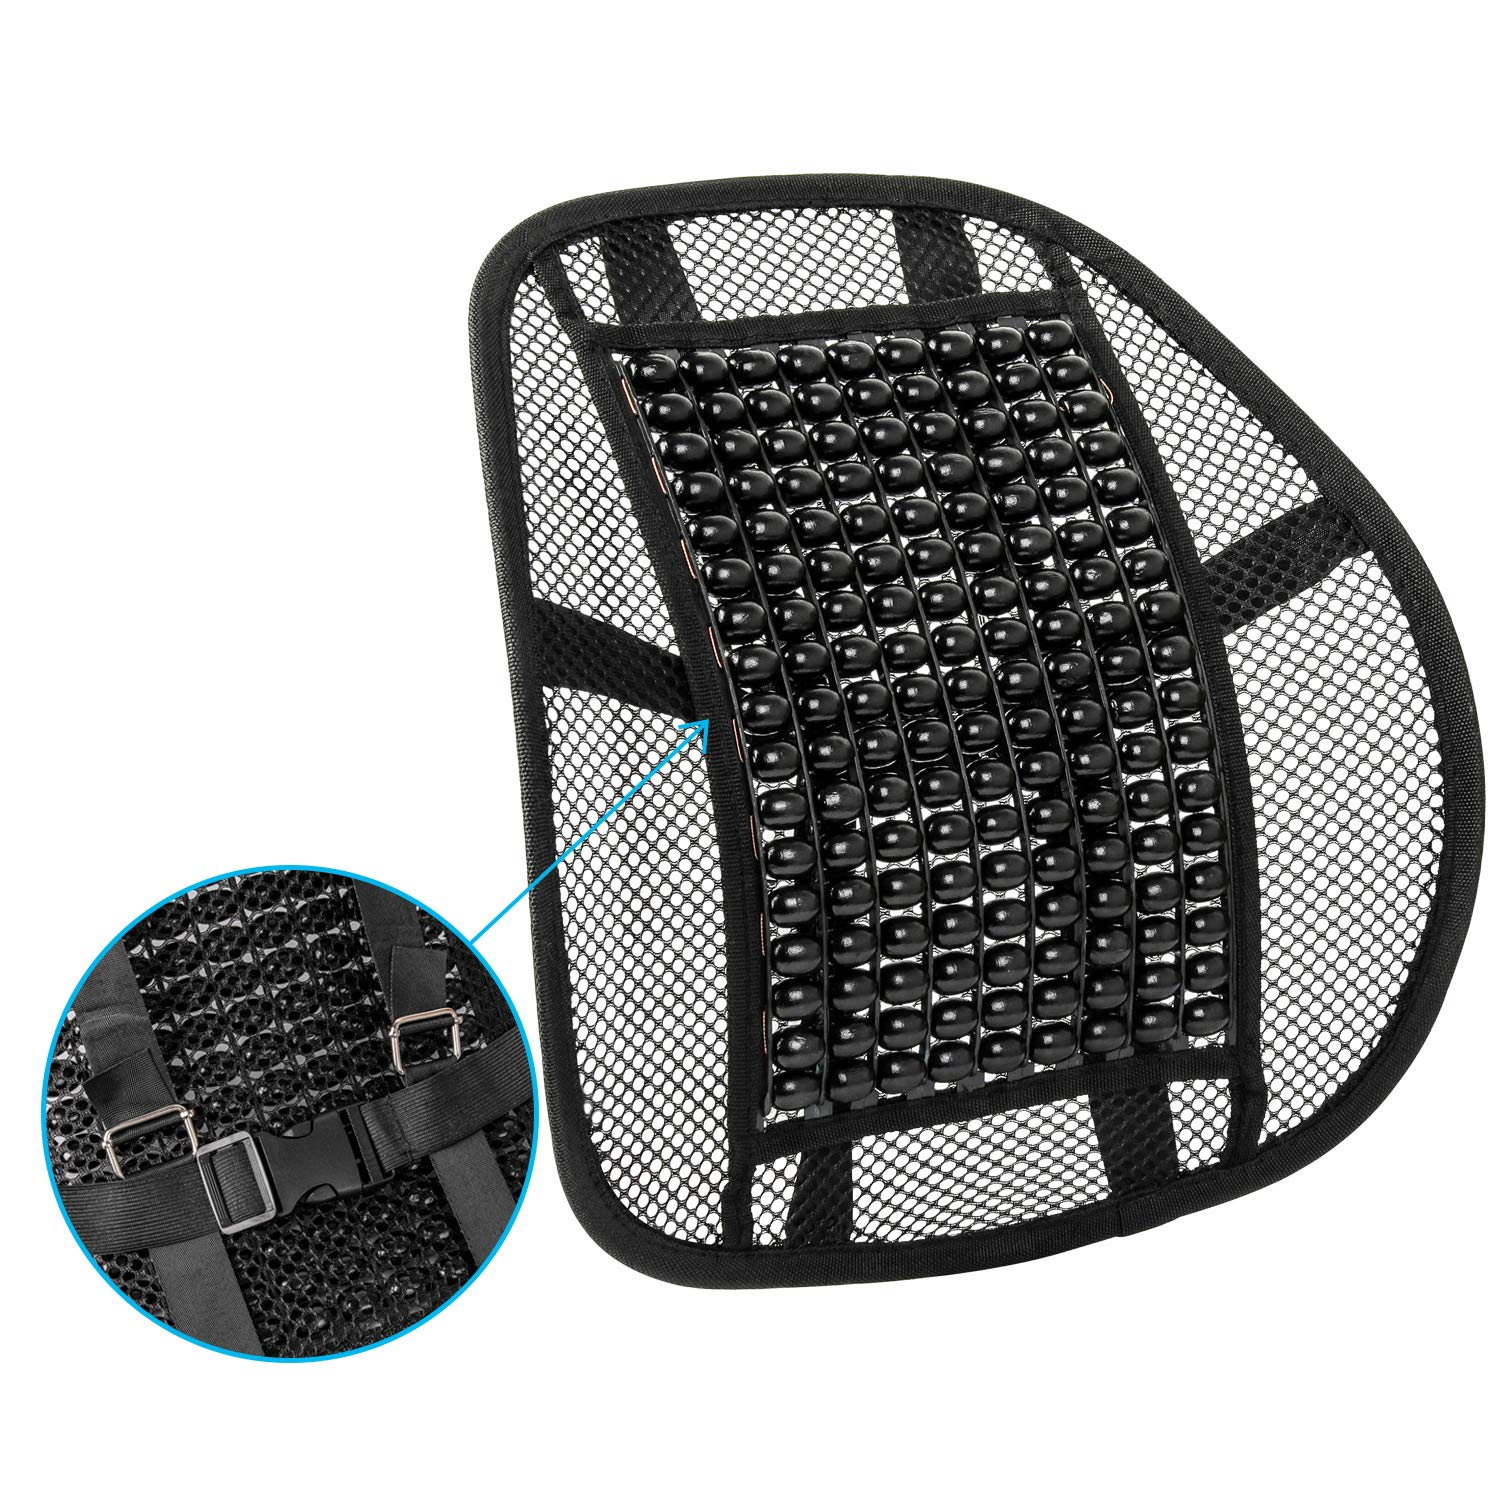 ACVCY Mesh Back Support for Office Chair or Car Seat,Breathable Comfortable Lumbar Support Cushion with Adjustable Strap for All Types Car Seats Office Chair 13.6'' x 17''